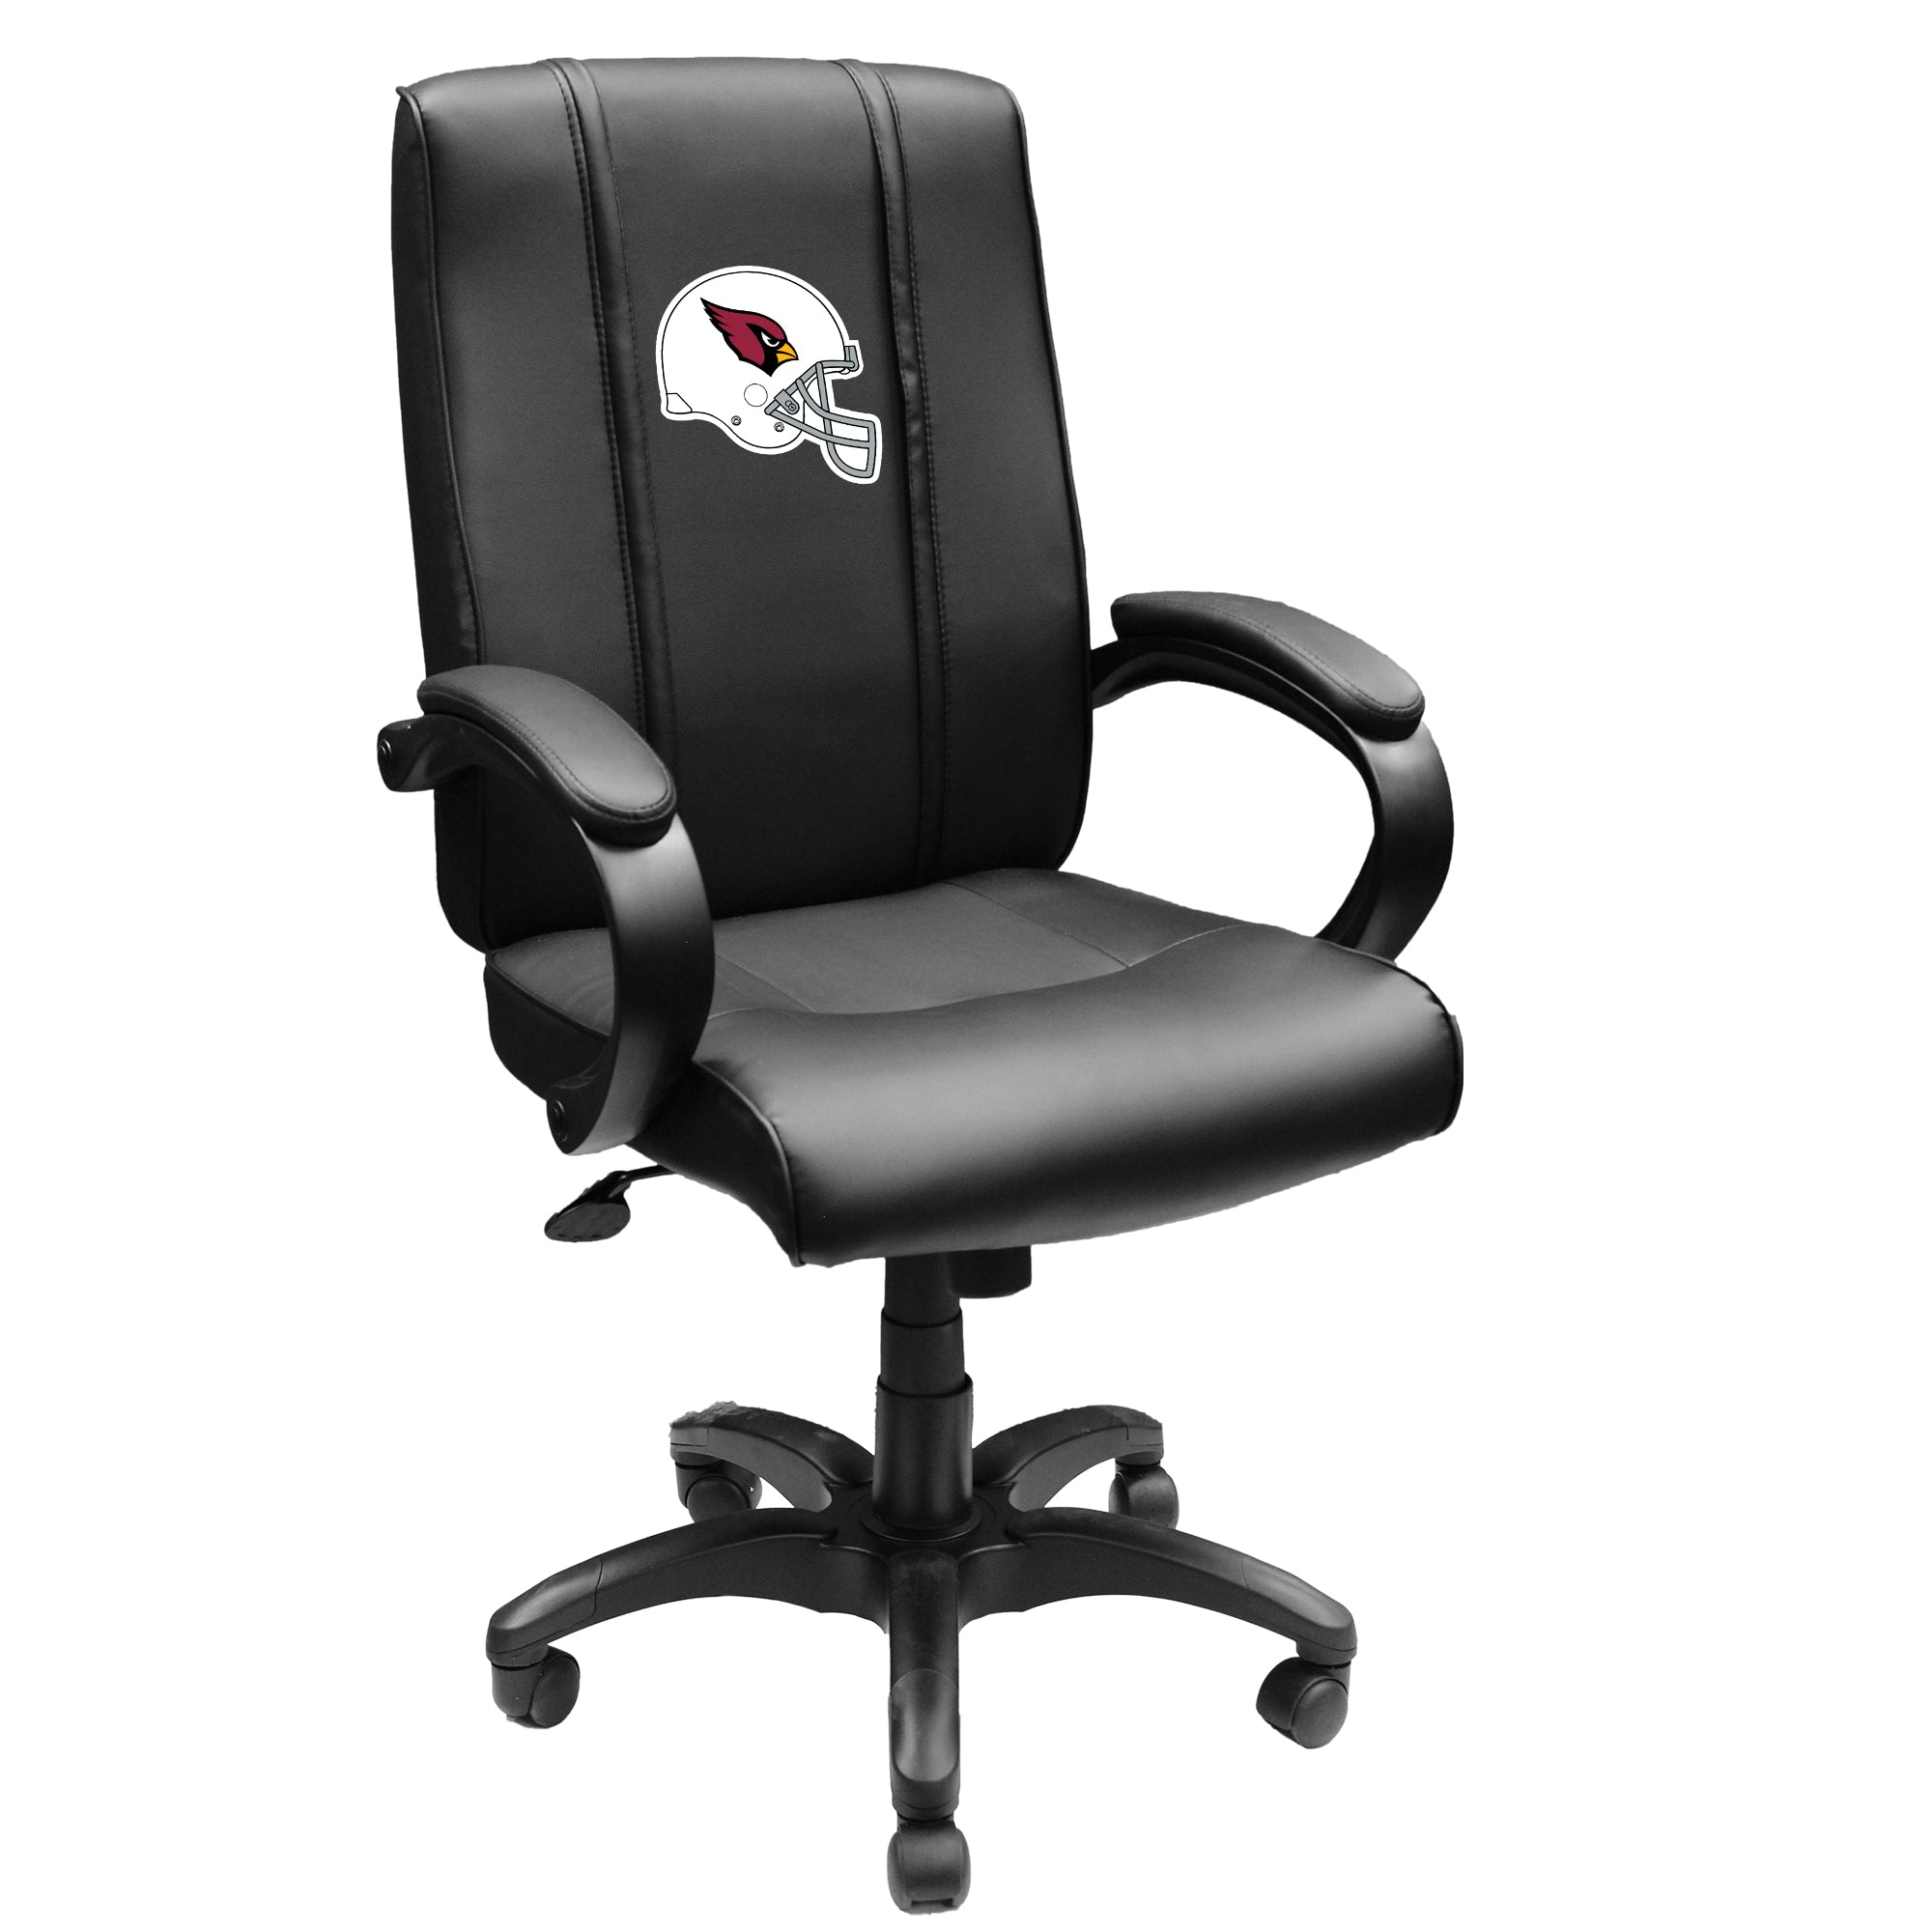 Office Chair 1000 with Arizona Cardinals Helmet Logo